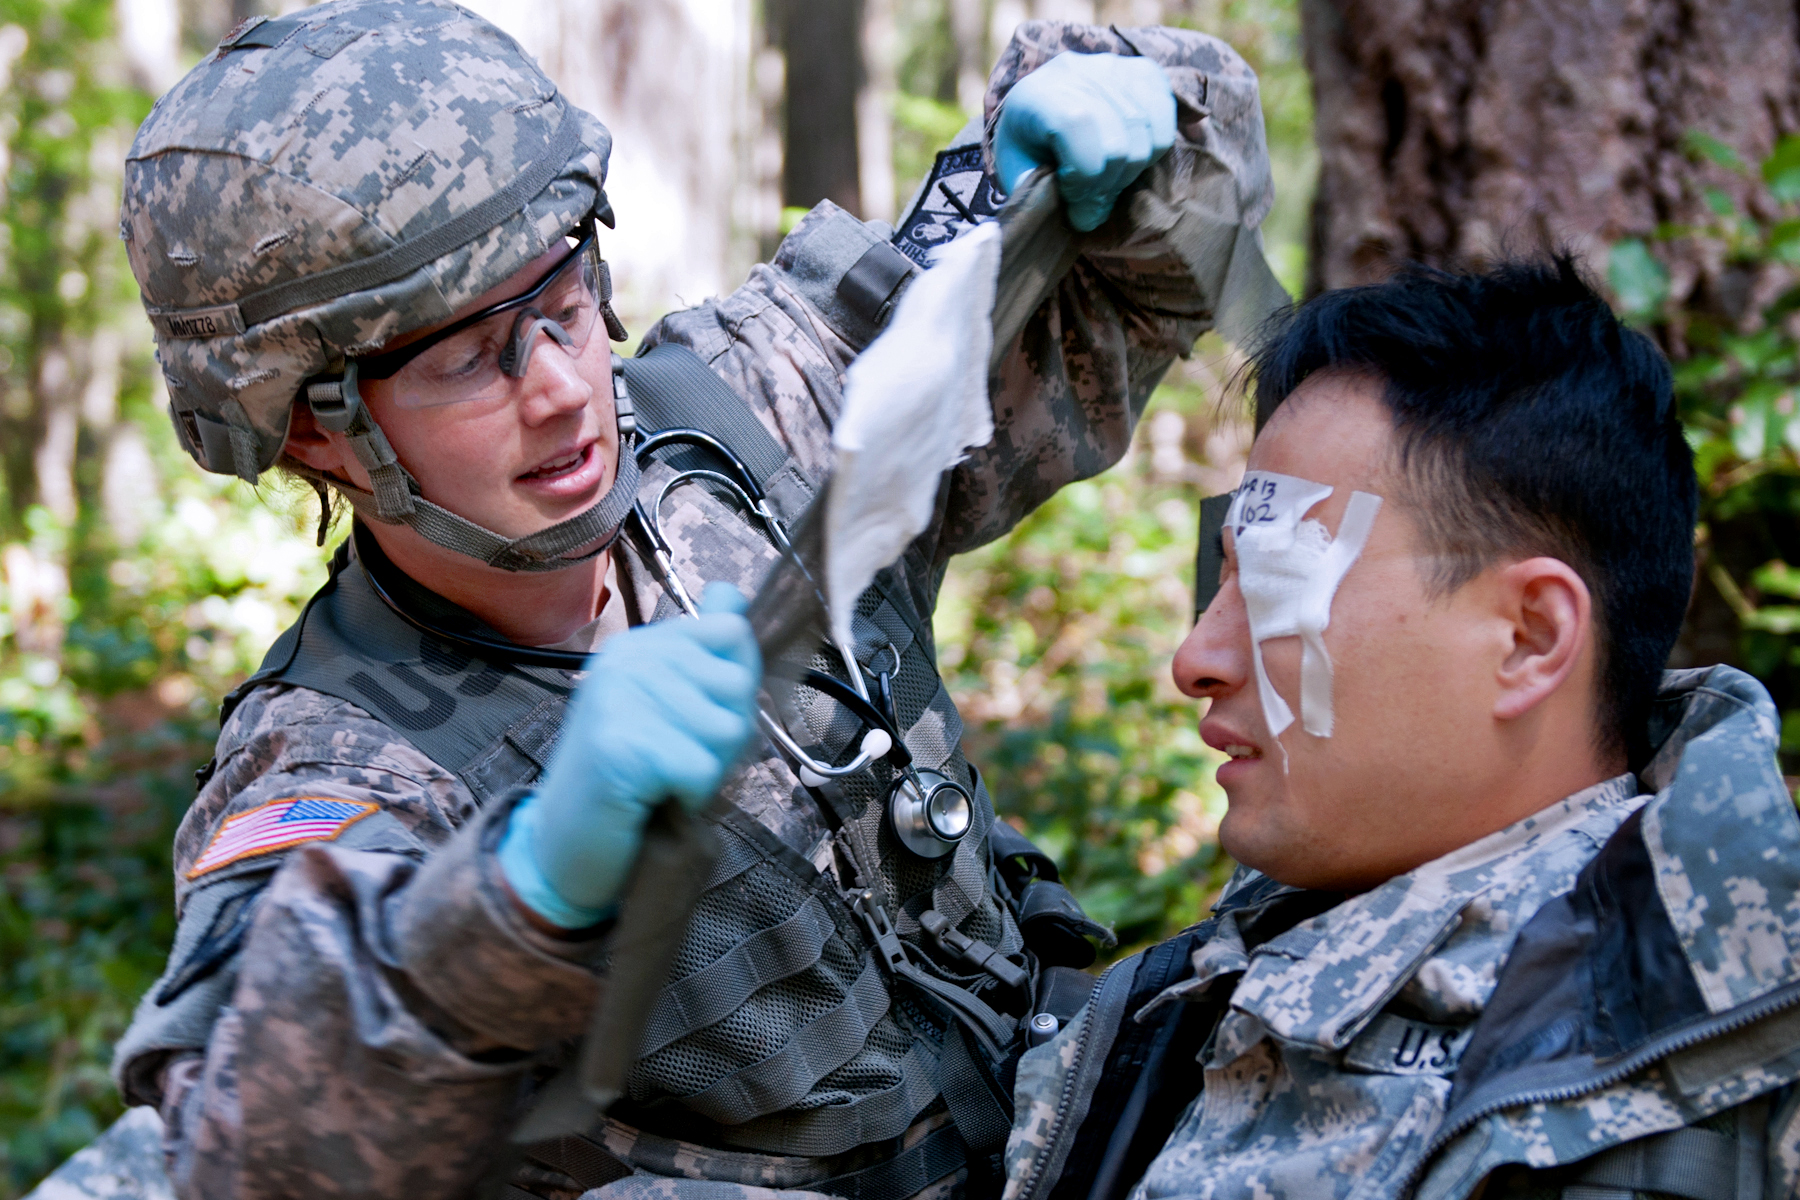 Army Capt  Megan Matters, left, treats an eye laceration for